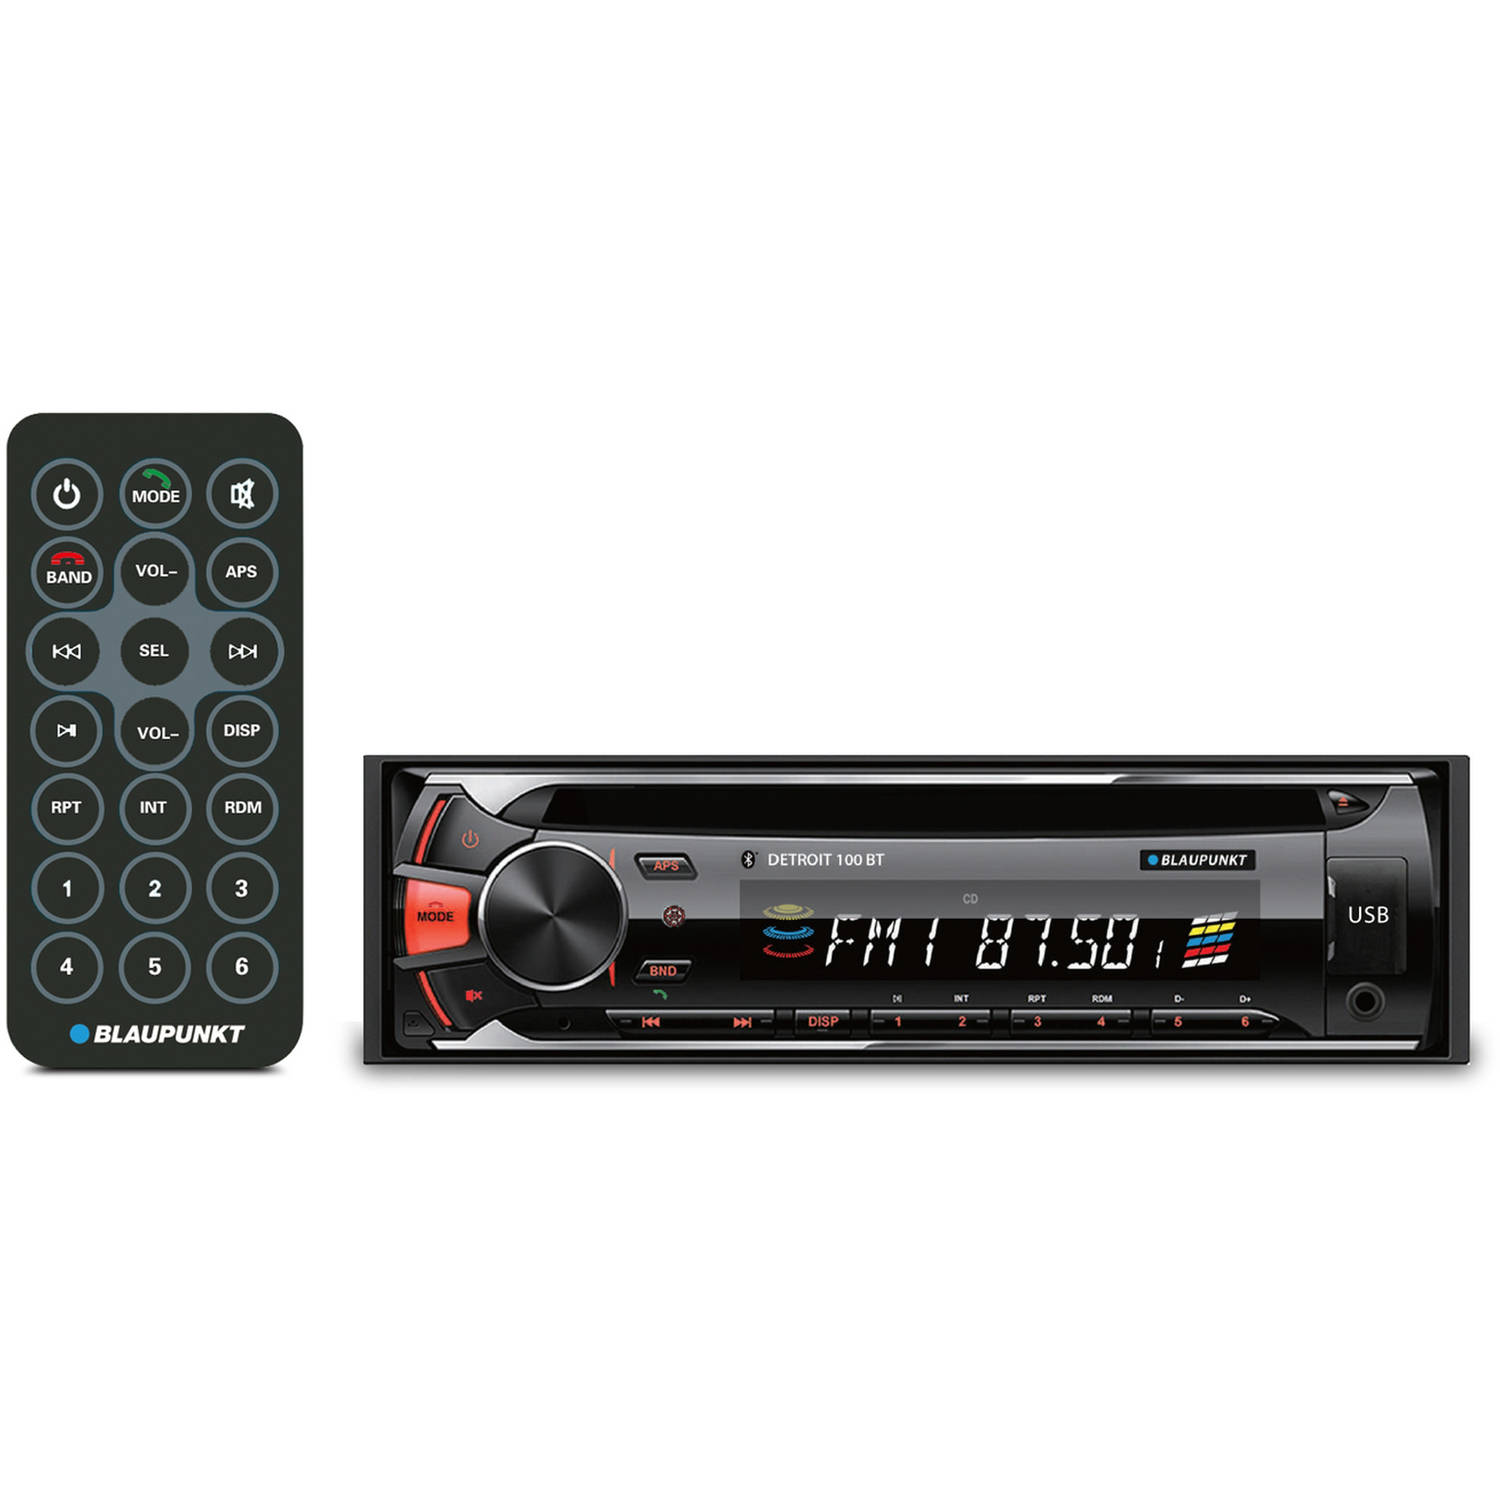 Blaupunkt Equalizer Wiring Diagram Trusted Diagrams Hifonics Cd And Mp3 Receiver With Bluetooth Detroit100bt